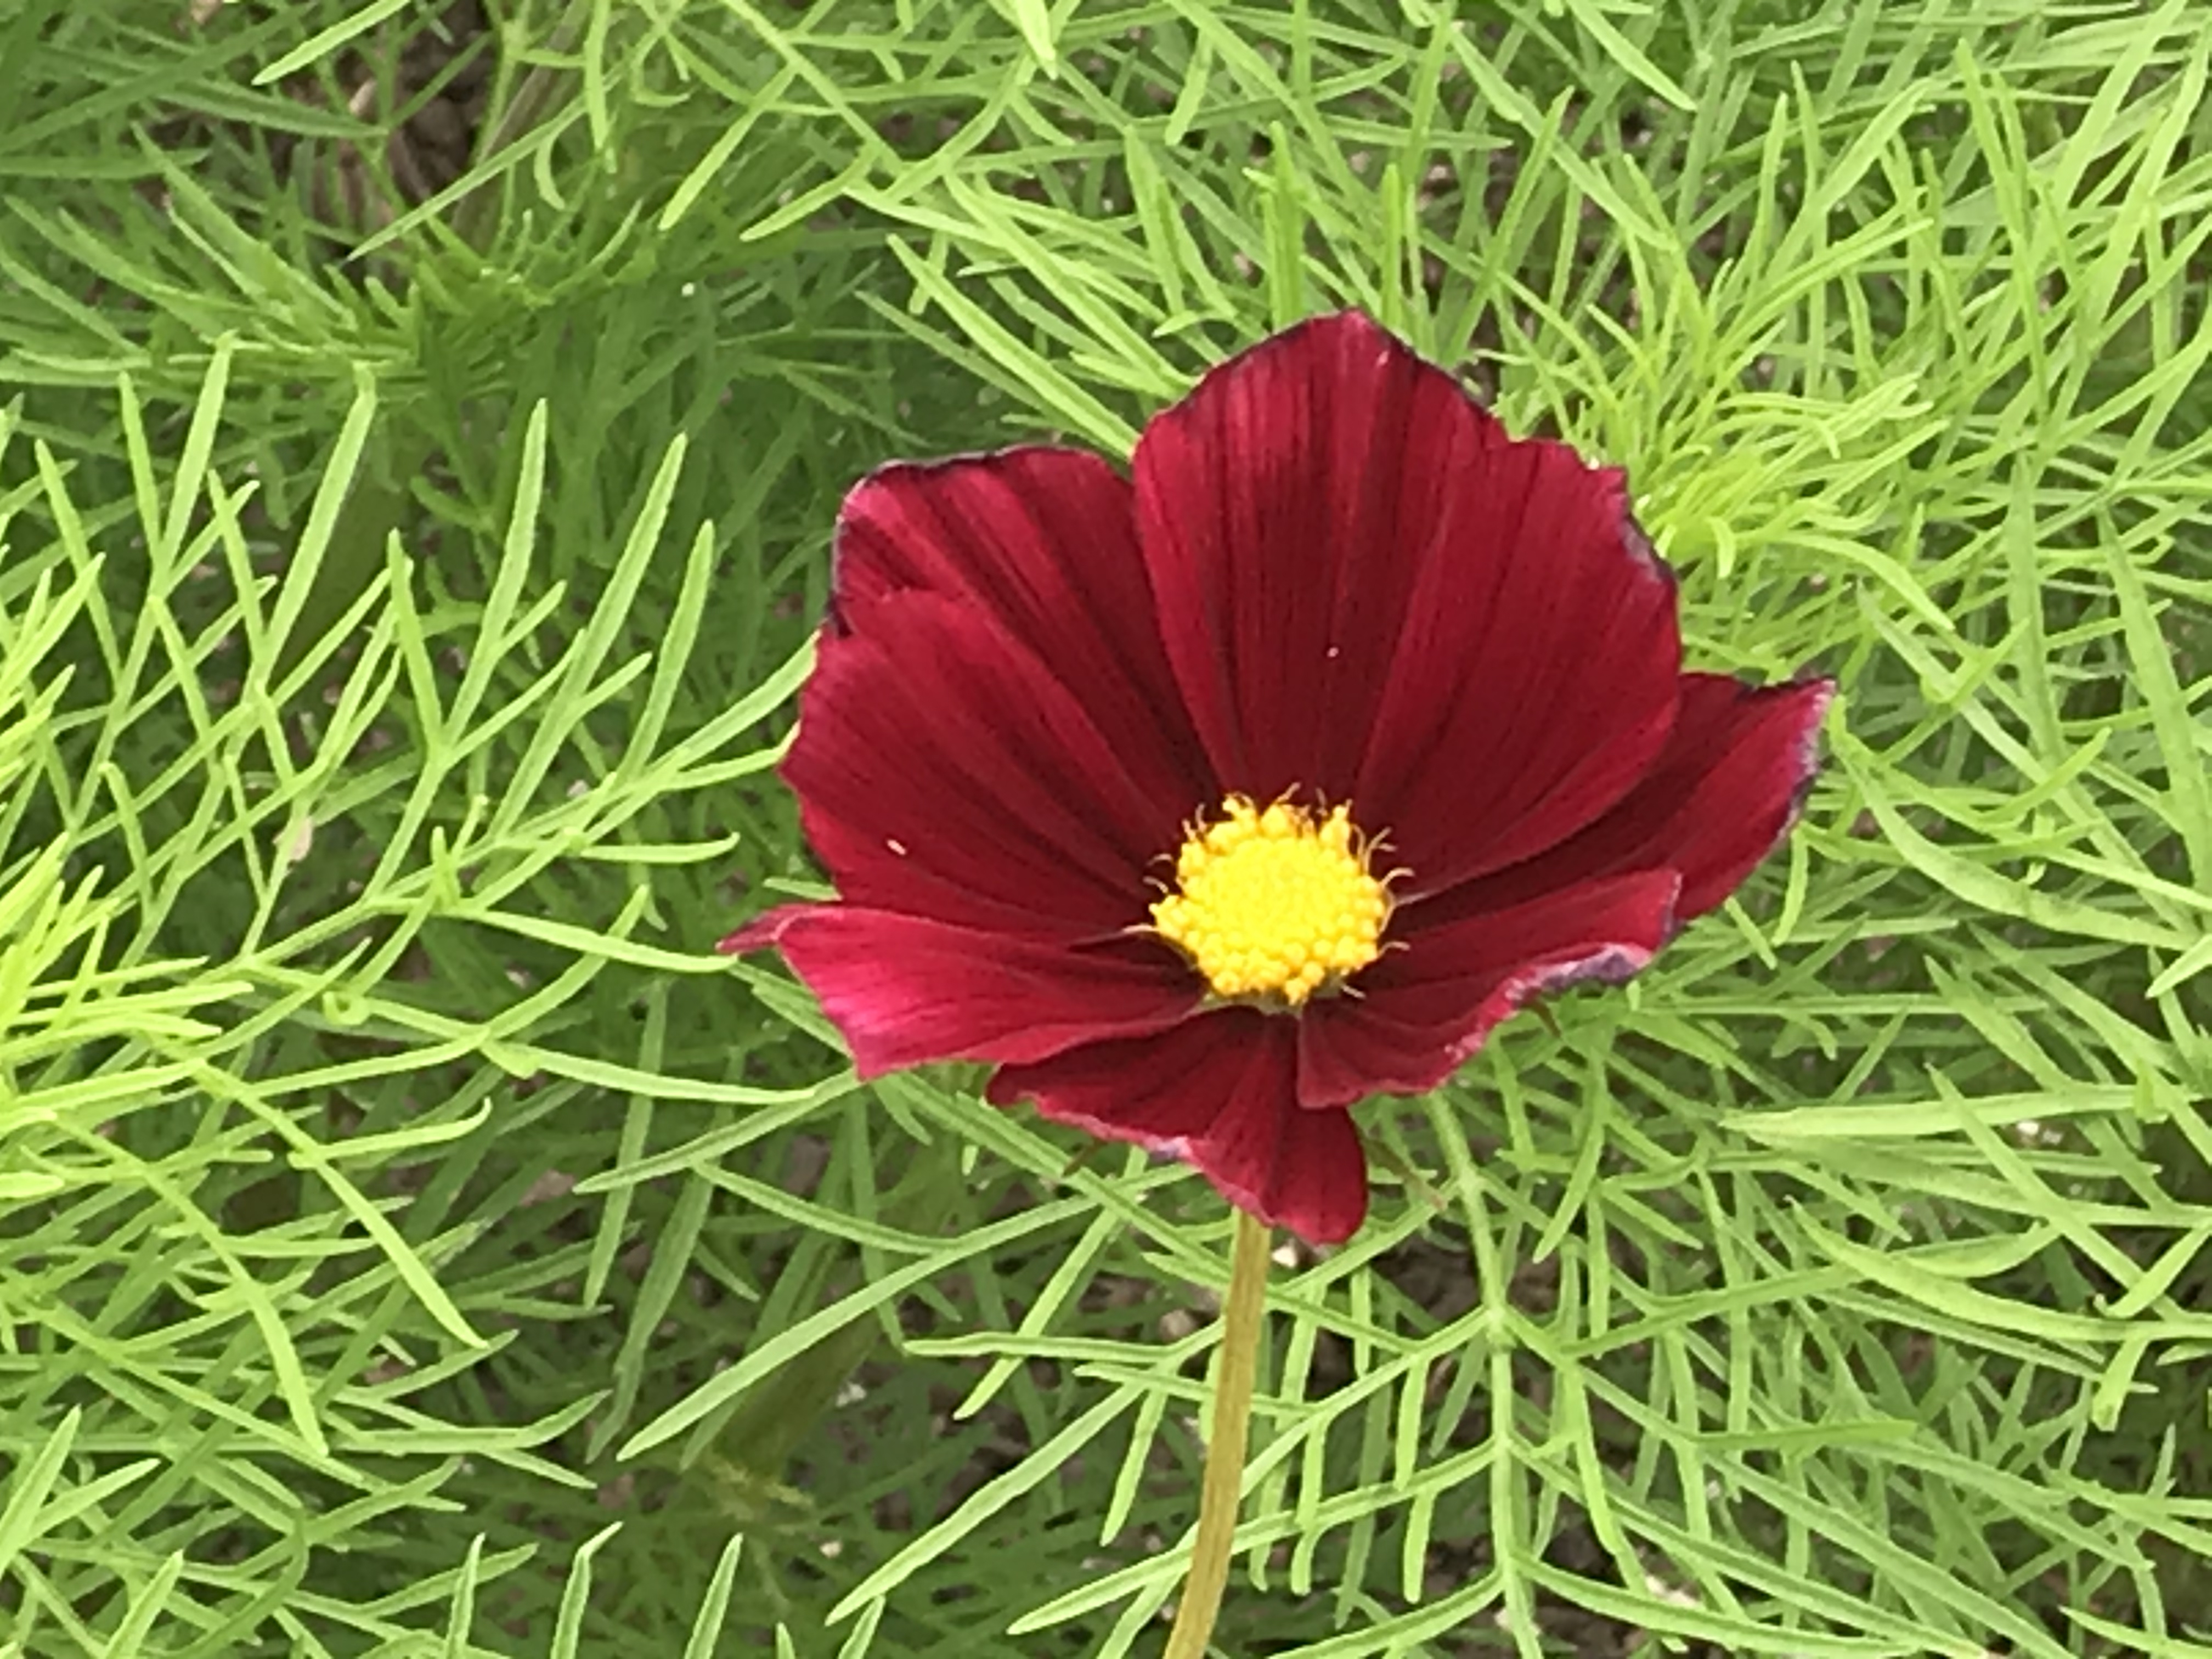 A dark red flower with a yellow center blooms amid green spiky stems and leaves